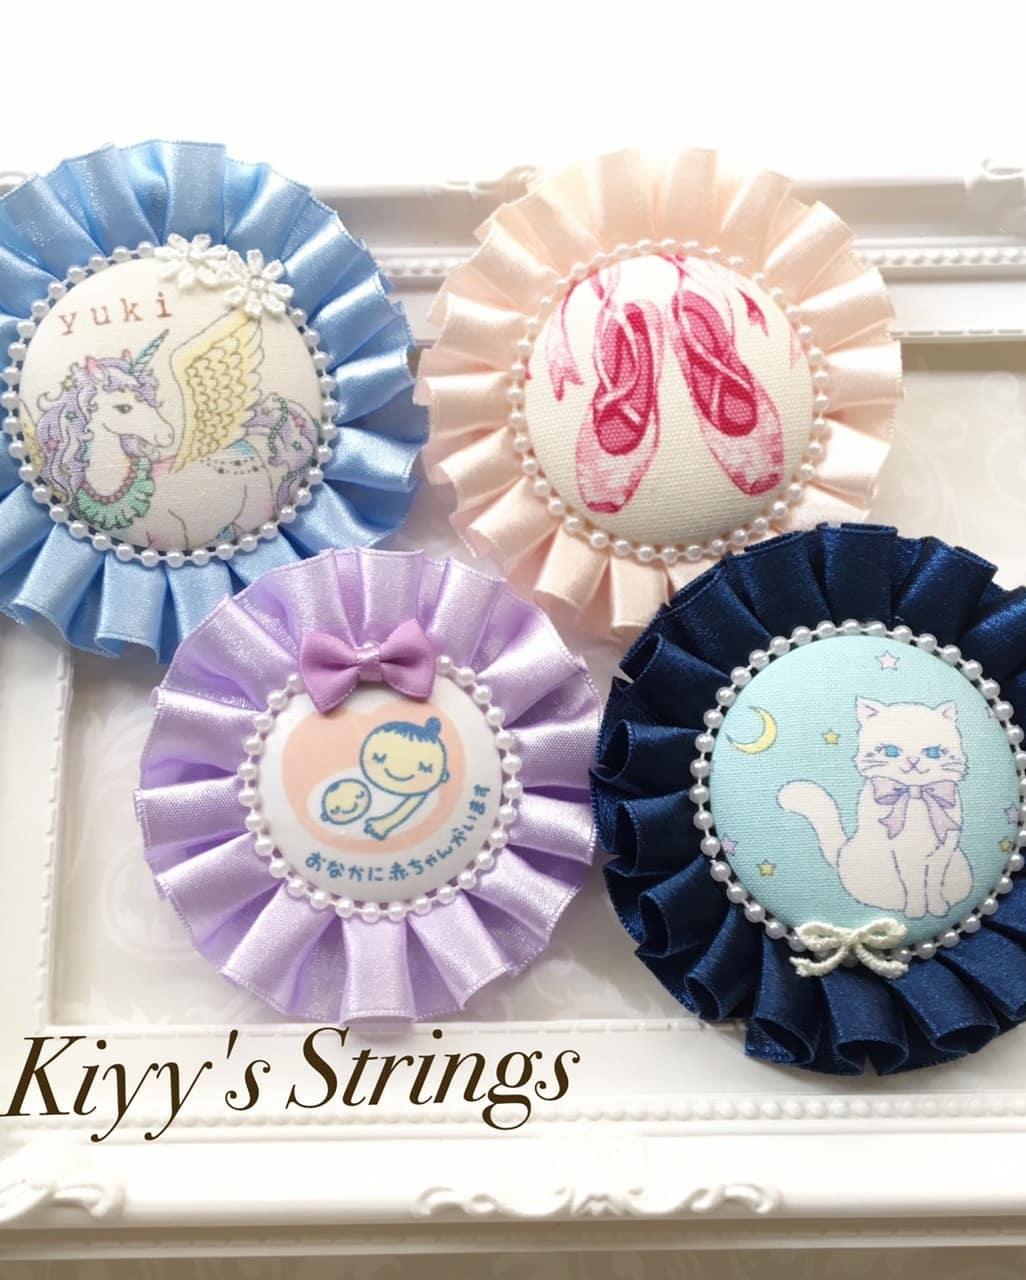 No.1 Kiyy's strings